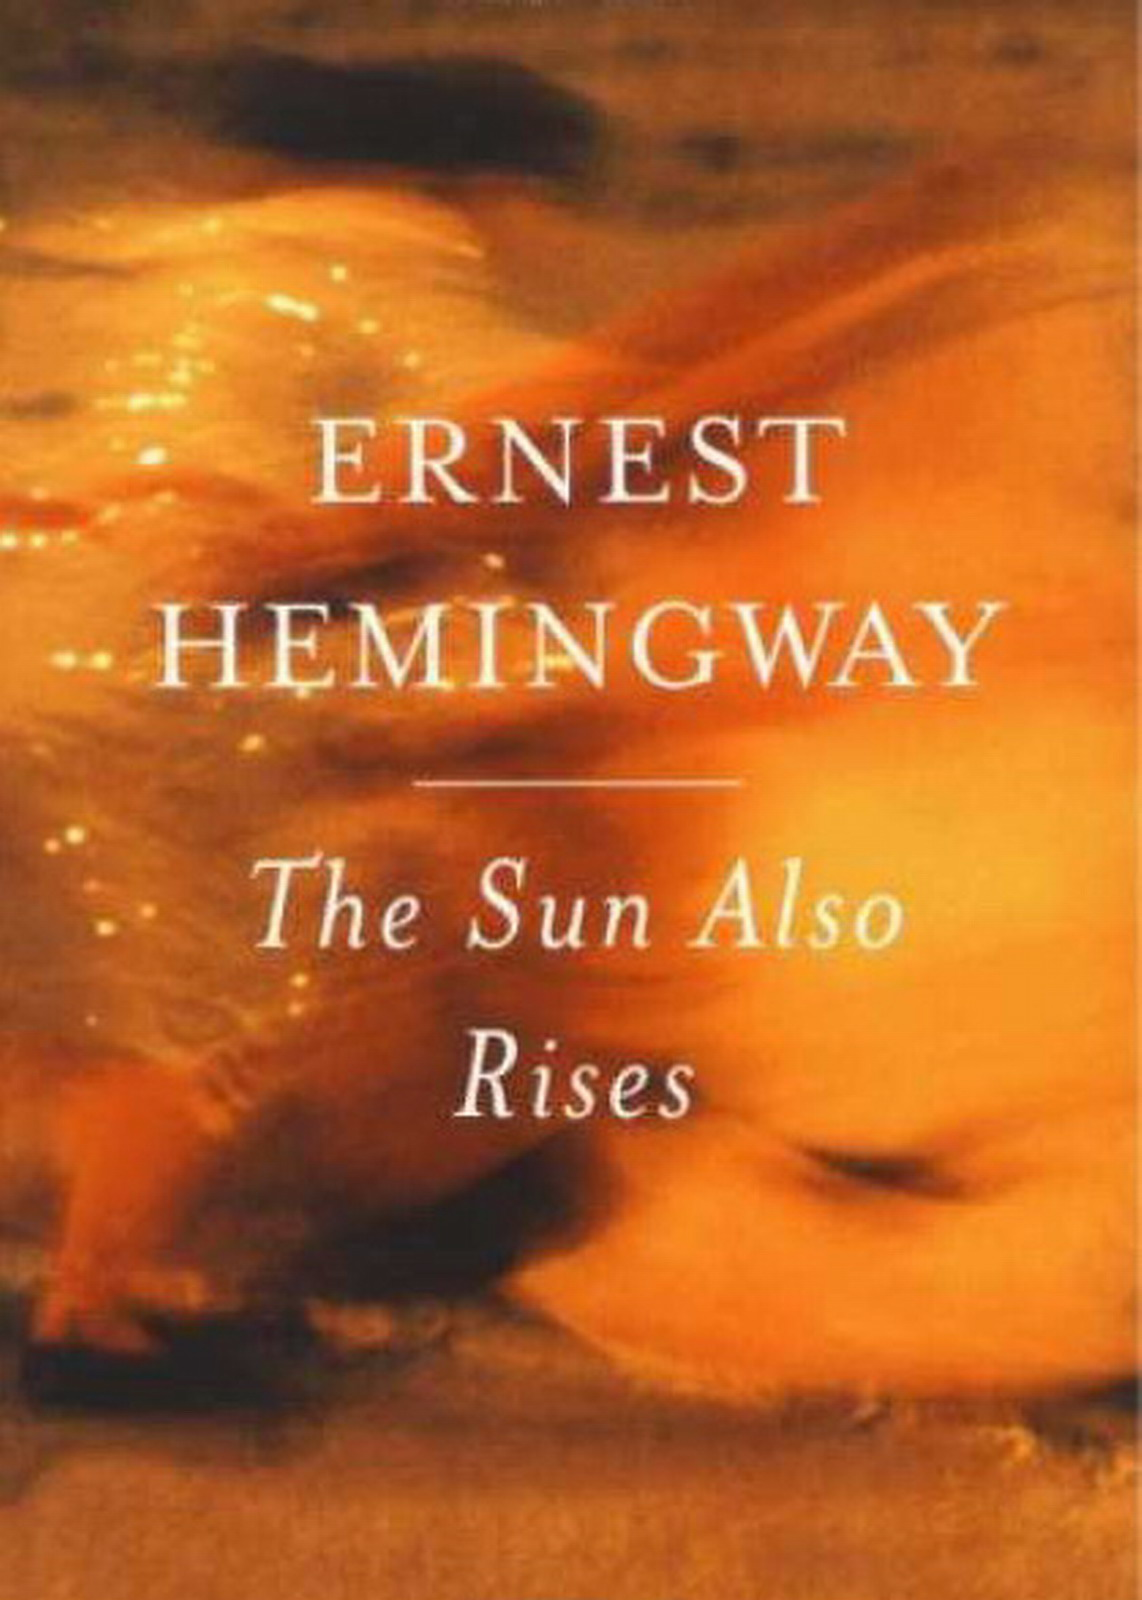 critical essays on ernest hemingways the sun also rises Ernest hemingway biography critical essays the radical structure of the sun also rises the hemingway ann beattie wrote in the hemingway style about well-off.